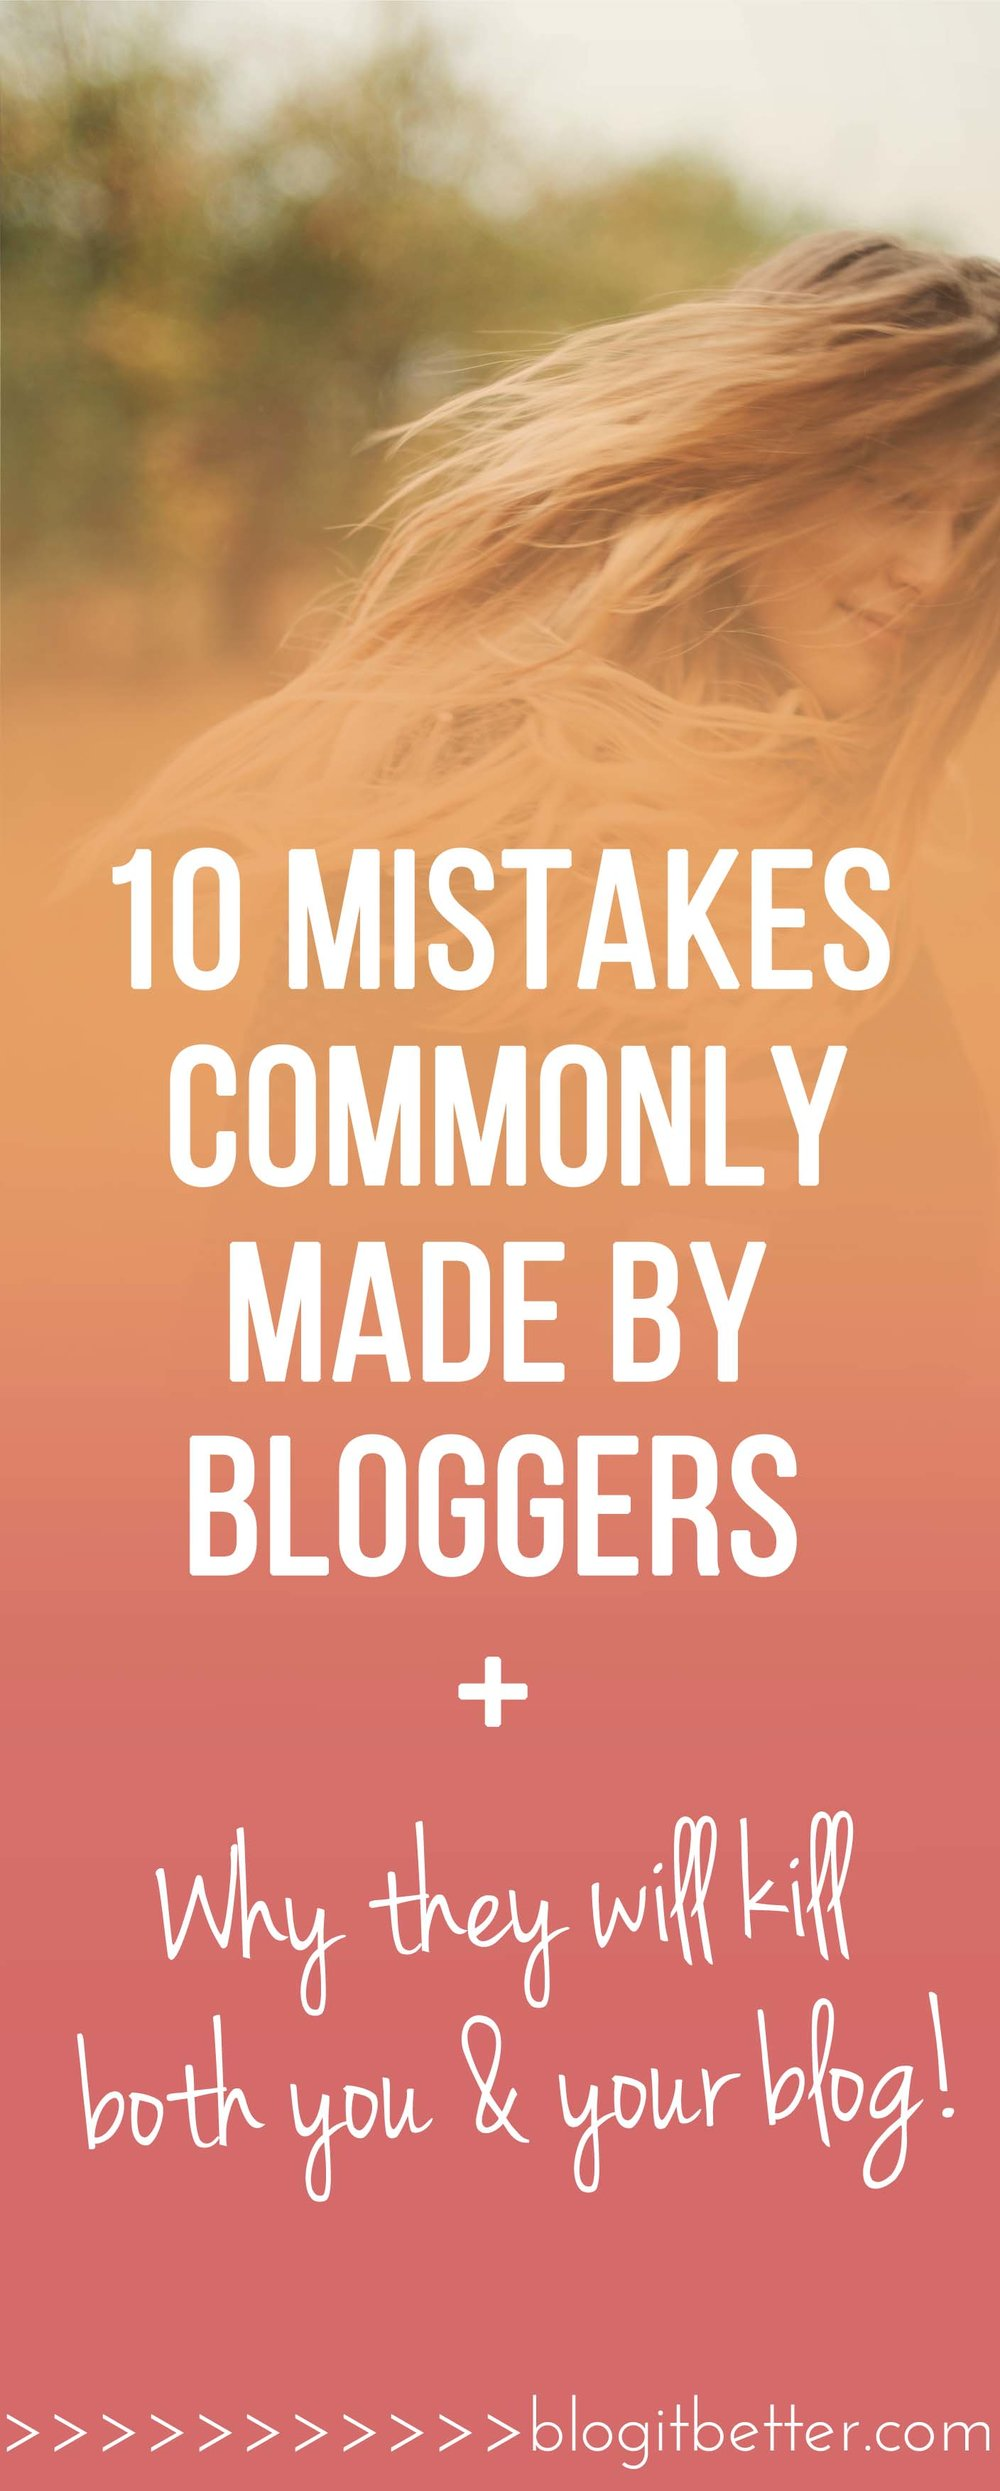 10 mistakes commonly made by bloggers, and why they will kill both you and your blog